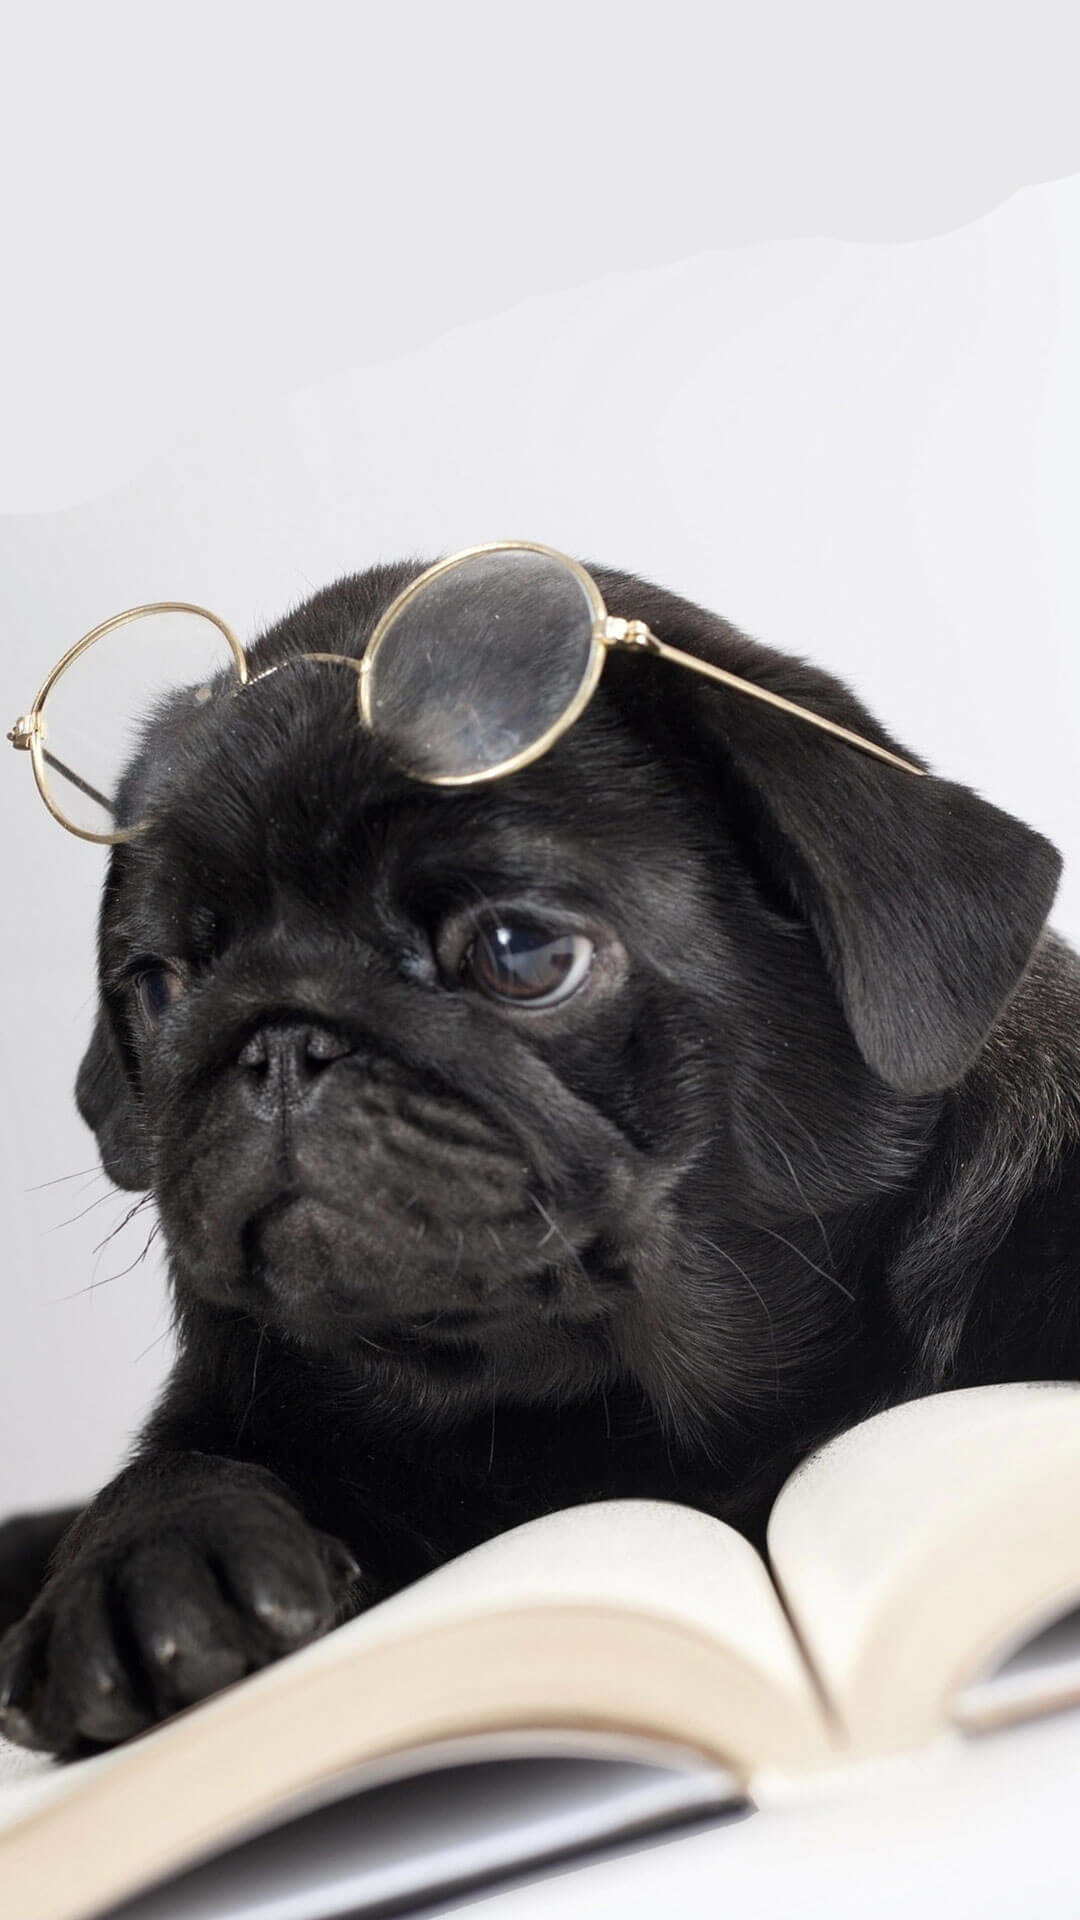 4229475422d Funny Pug Pictures Wallpaper (75+ images)